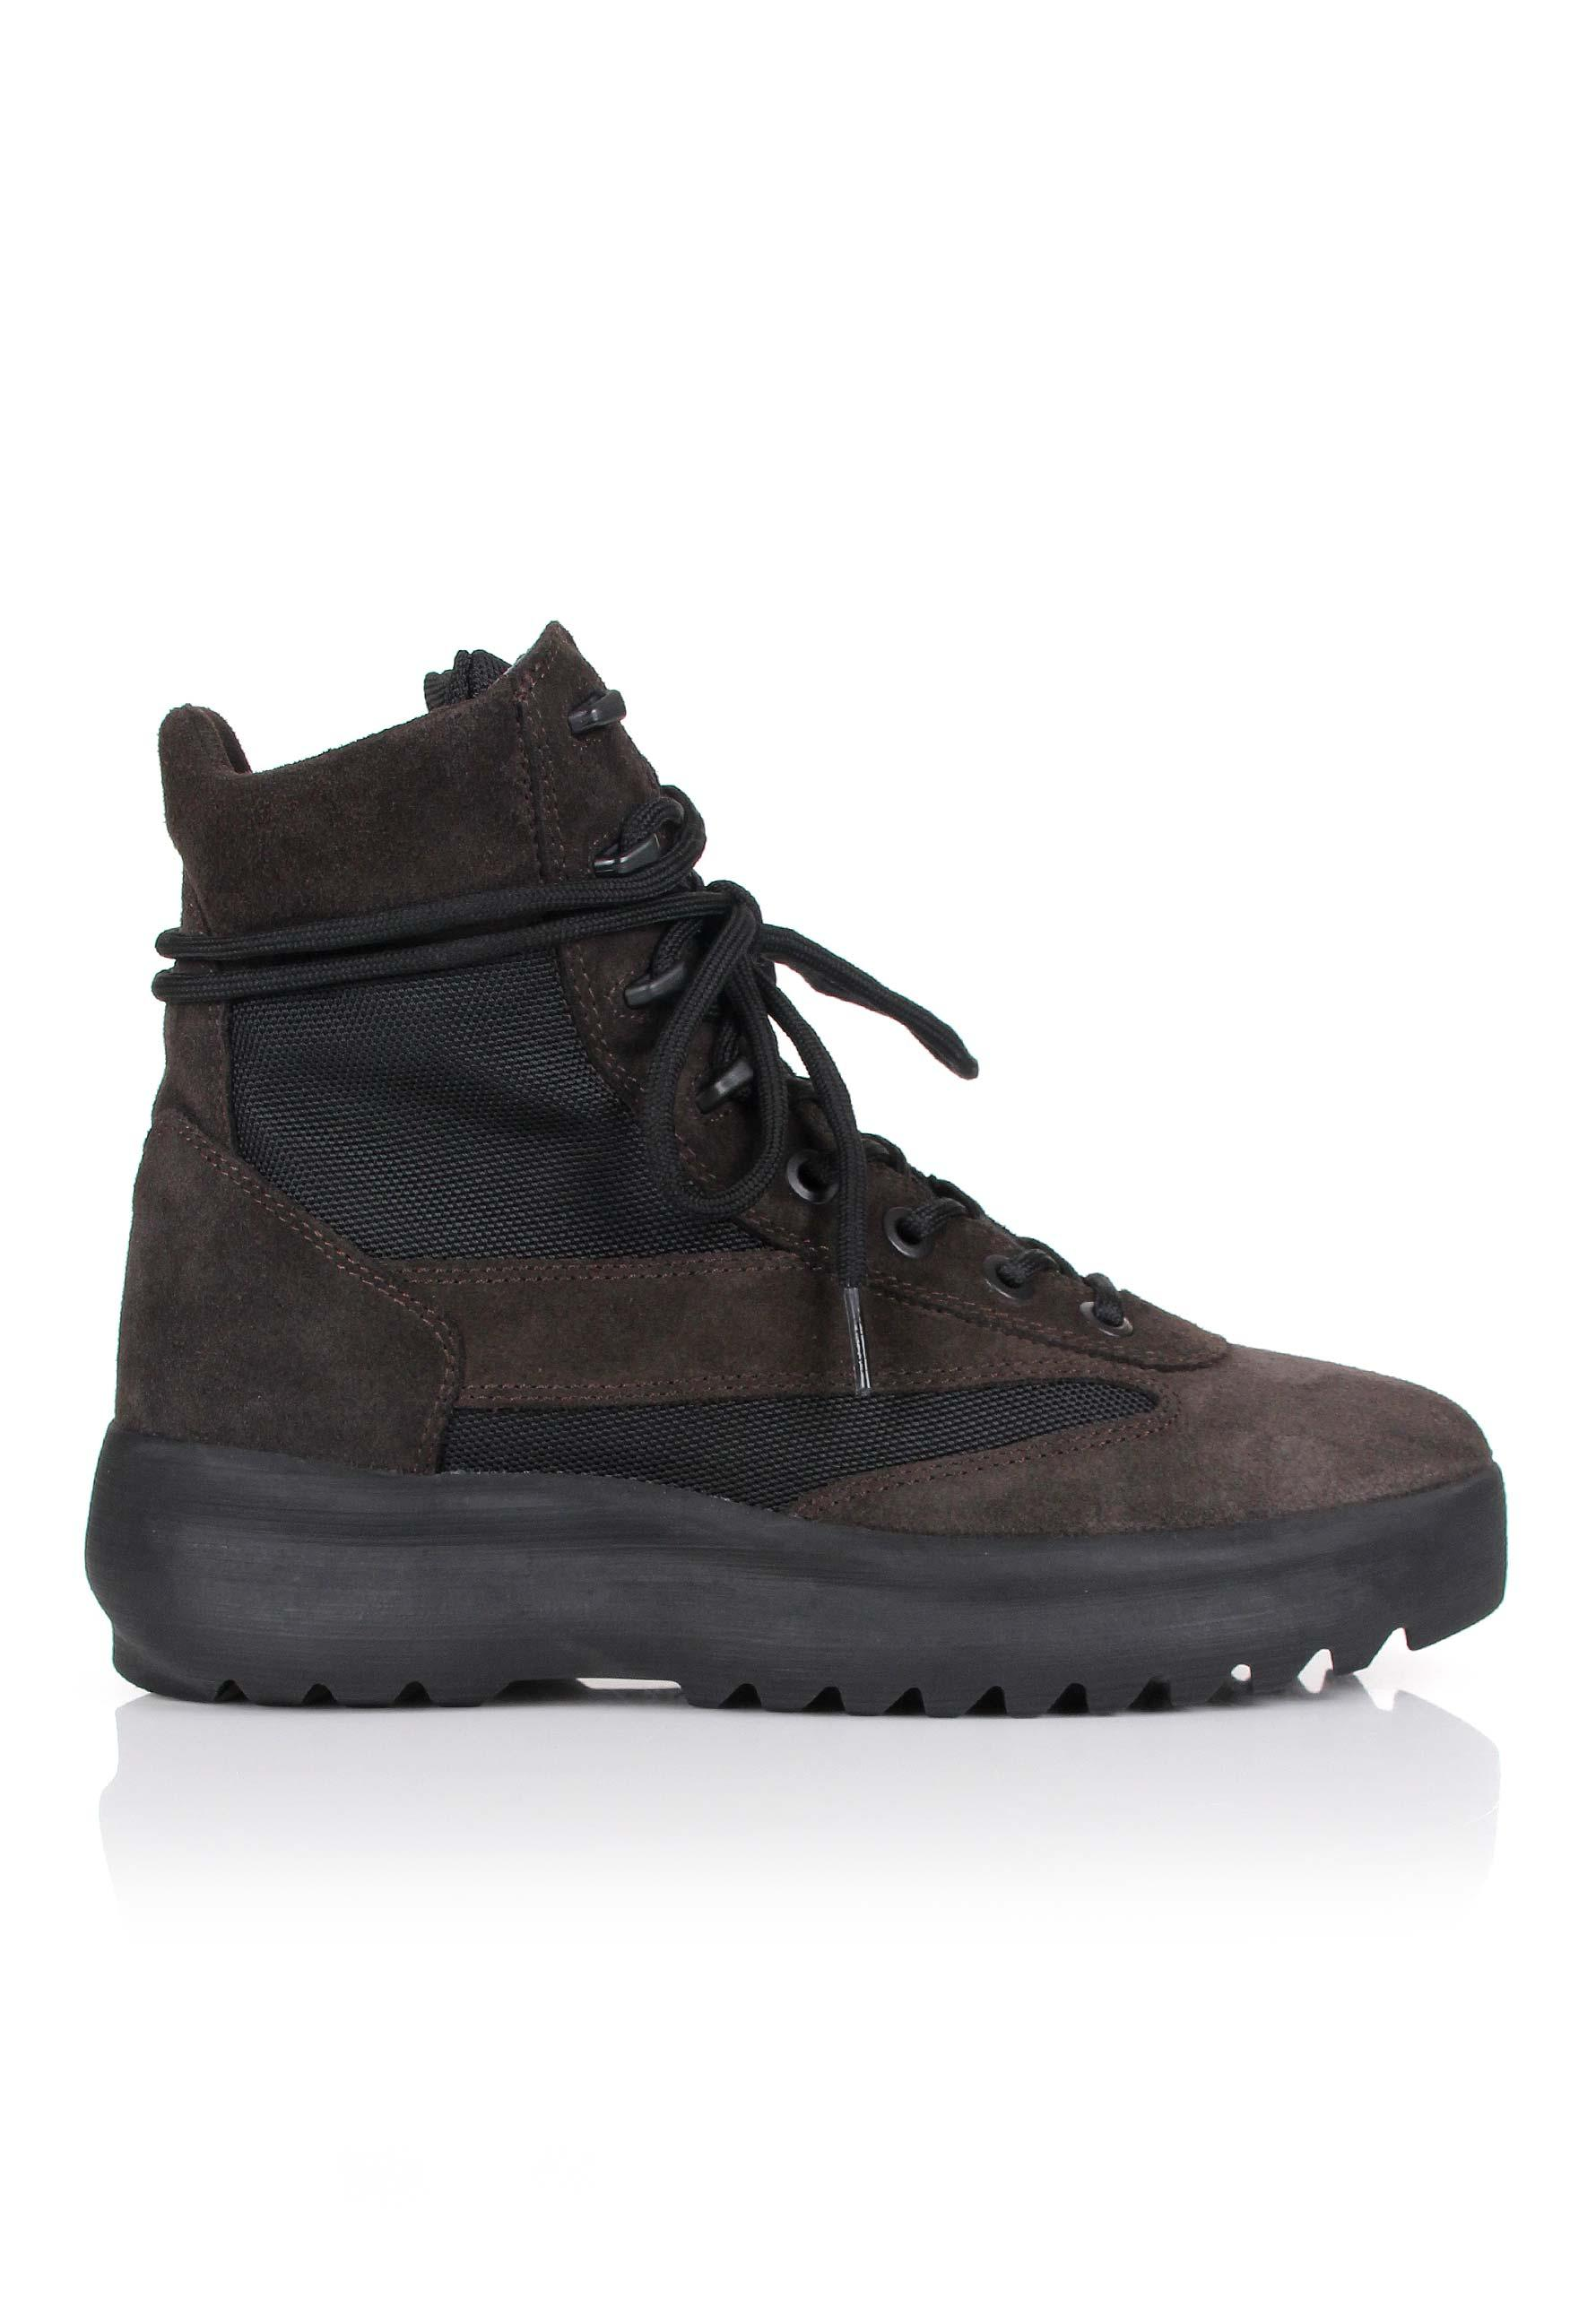 Cheap Price Wholesale Price Get To Buy For Sale Yeezy & Military Boots pOtXe